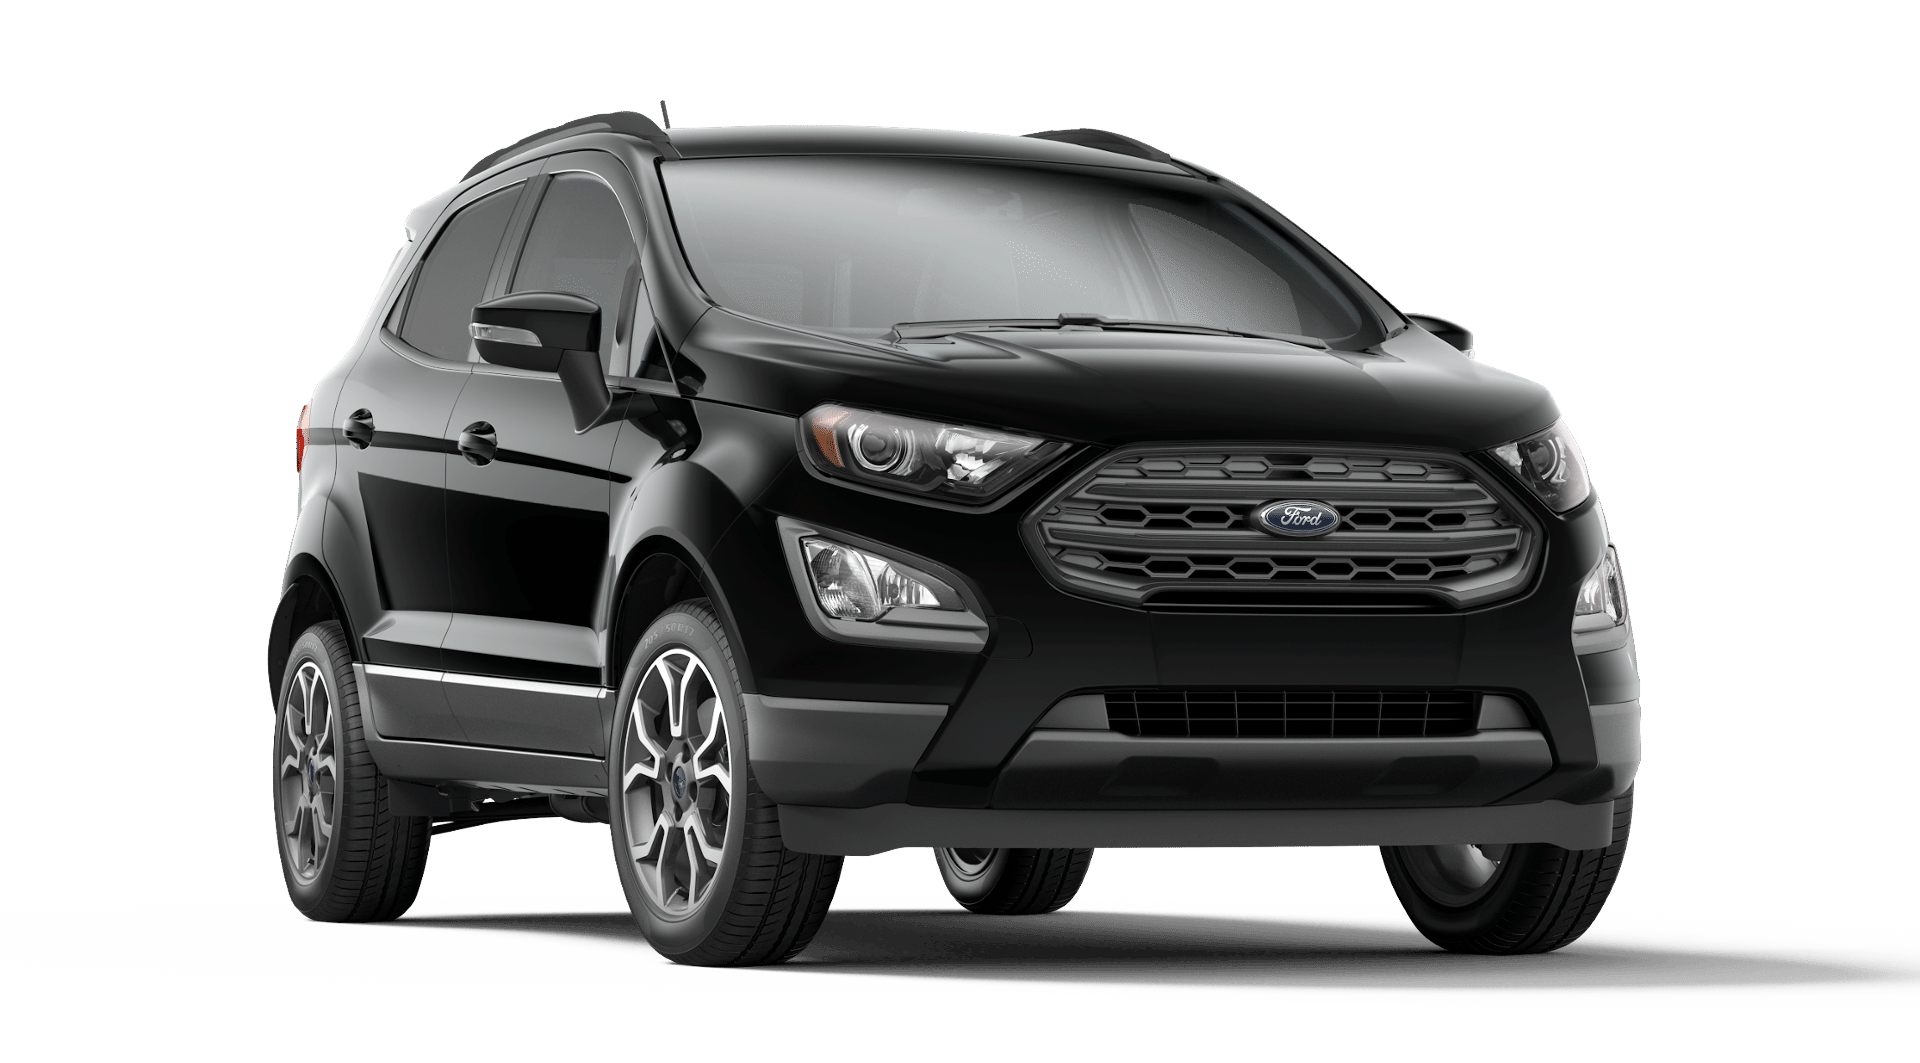 2018 Ford EcoSport SES 4WD - Shown